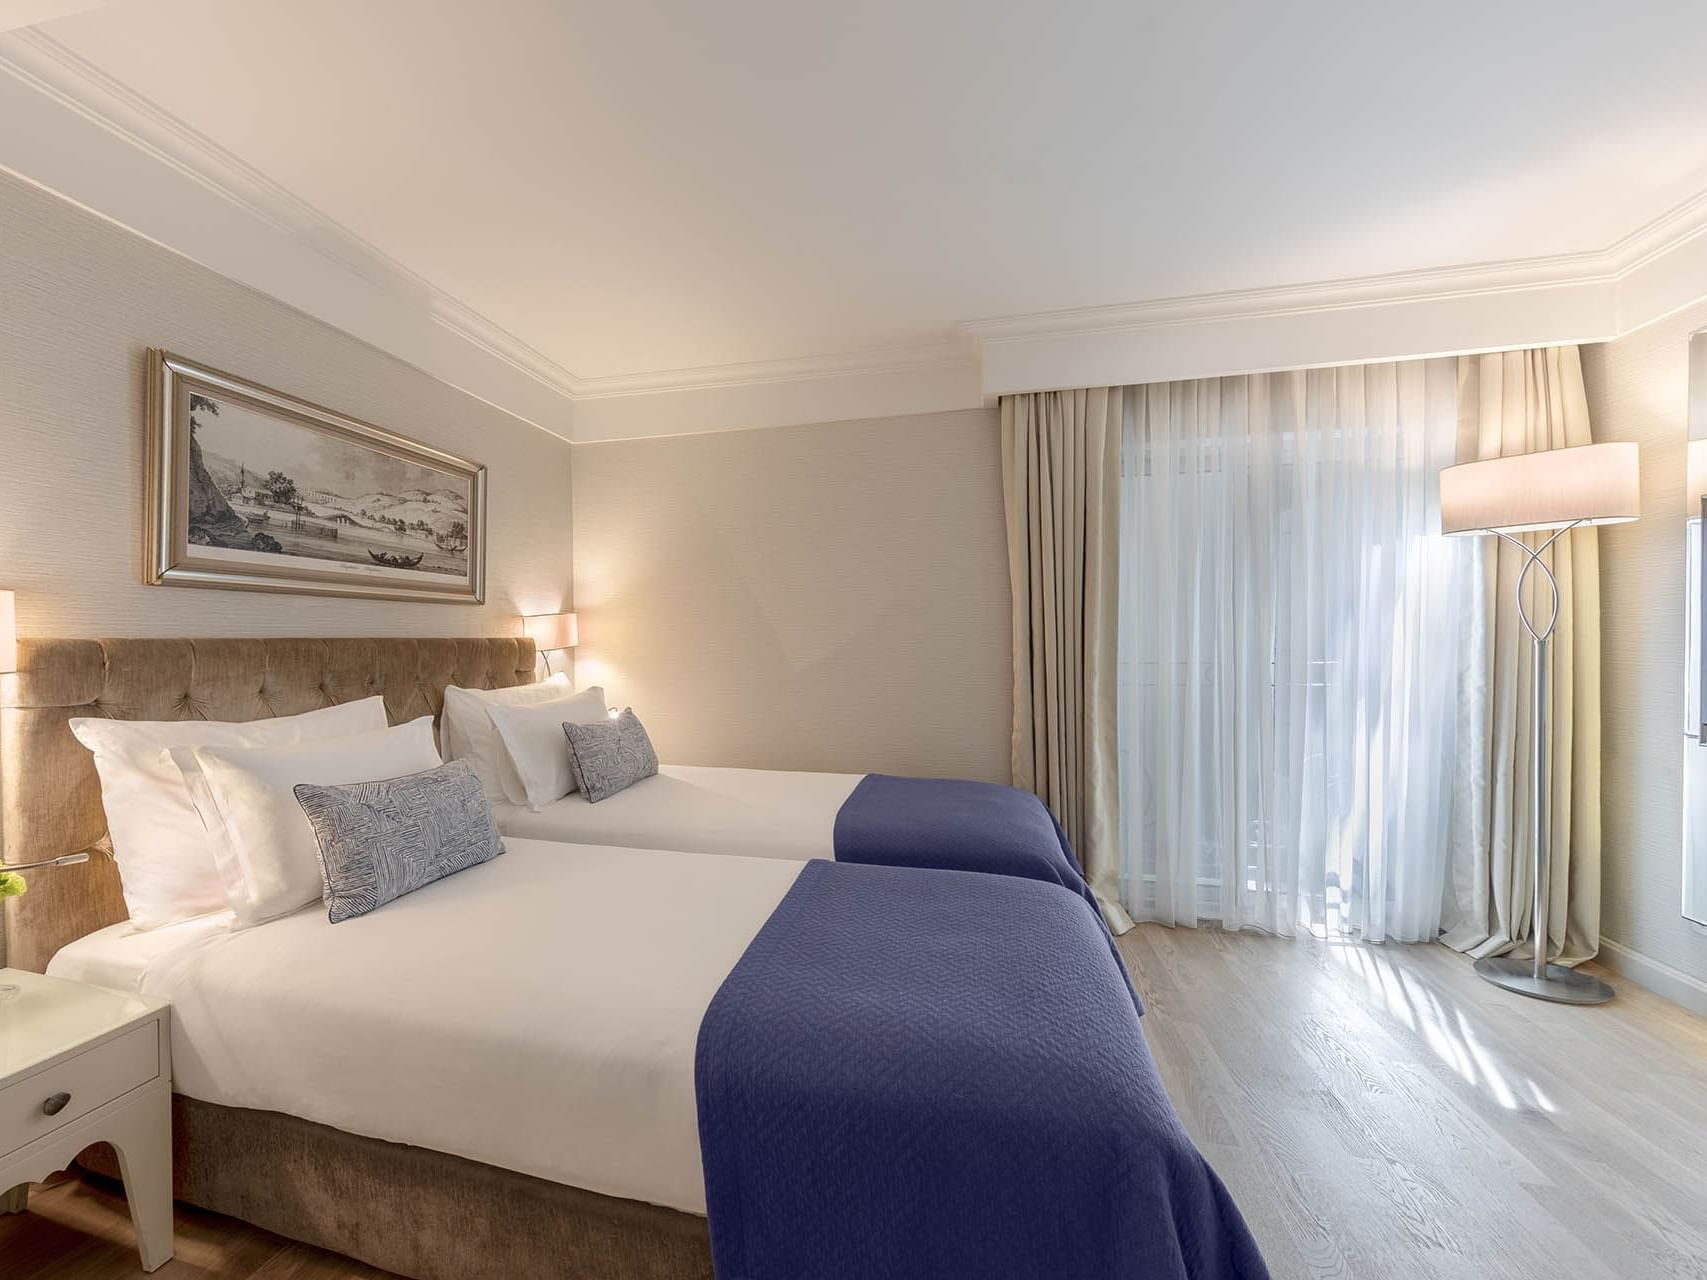 Standard Room with two beds at CVK Taksim Hotel Istanbul